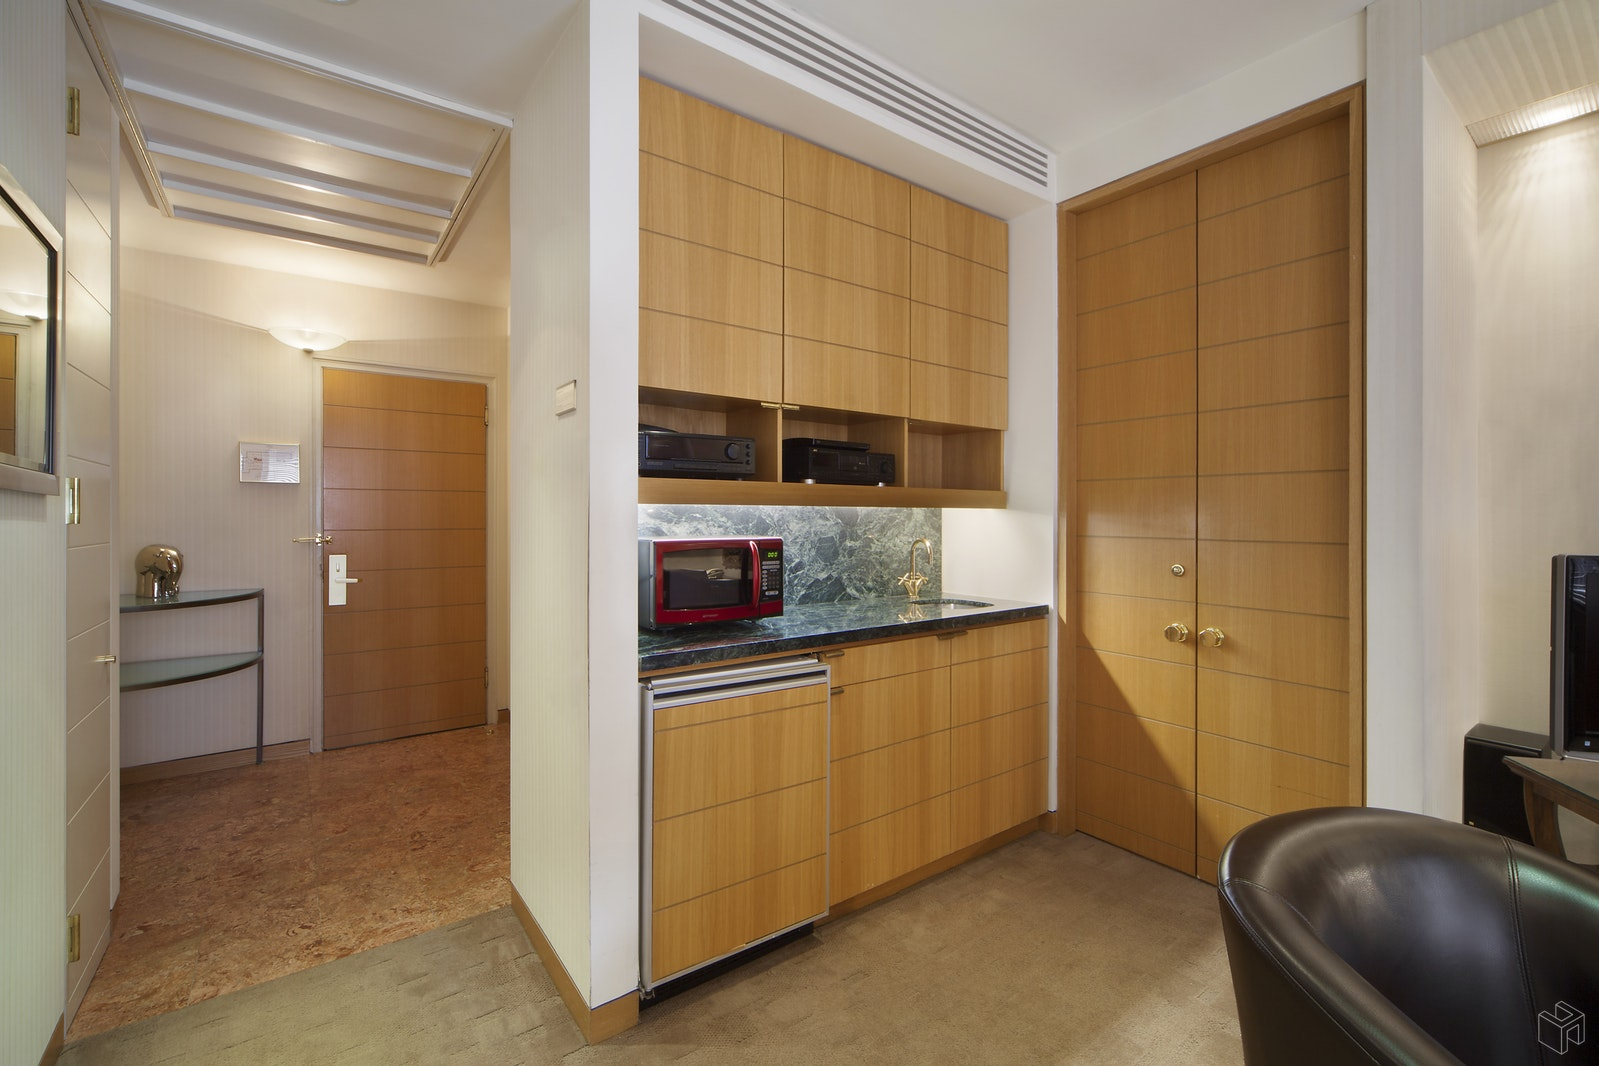 111 EAST 56TH STREET 1401, Midtown East, $850,000, Web #: 14253254